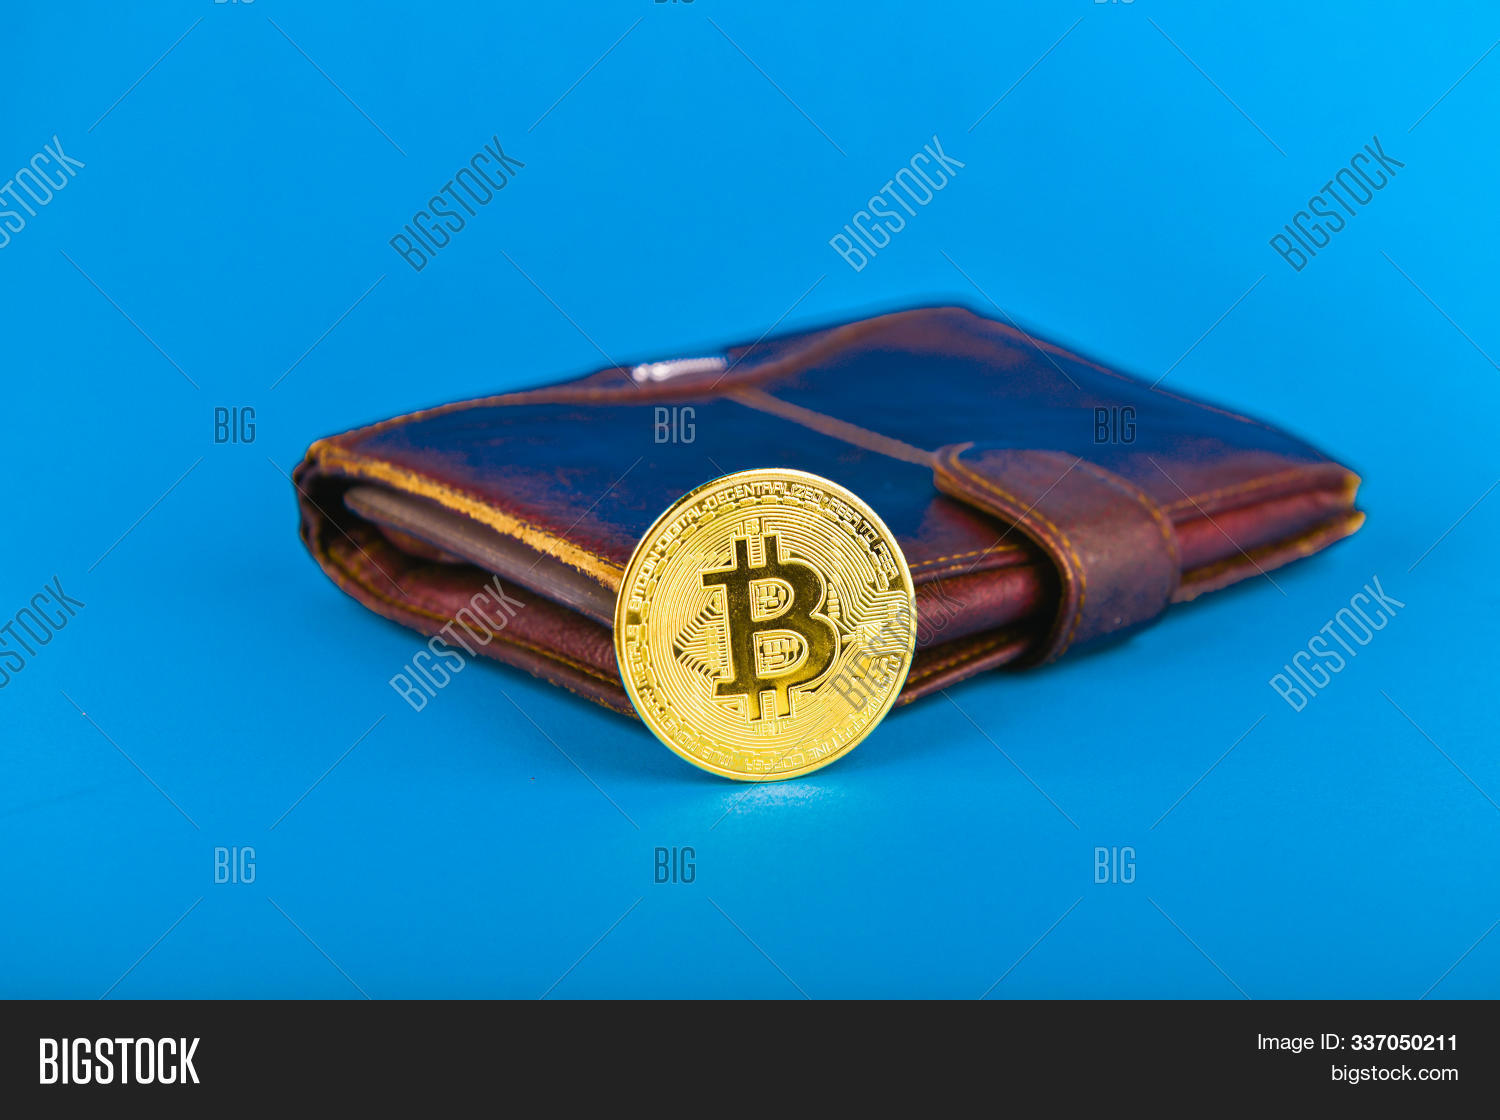 attachment,background,bank,banking,bit,bitcoin,business,cart,cash,code,coin,concept,conceptual,contribution,crypto,currency,electronic,euro,exchange,finance,financial,gold,golden,hand,internet,invest,investing,investment,investor,letters,market,marketing,metal,money,net,network,news,newsletter,newspaper,payment,person,rich,save,technology,trade,trader,tradesman,virtual,web